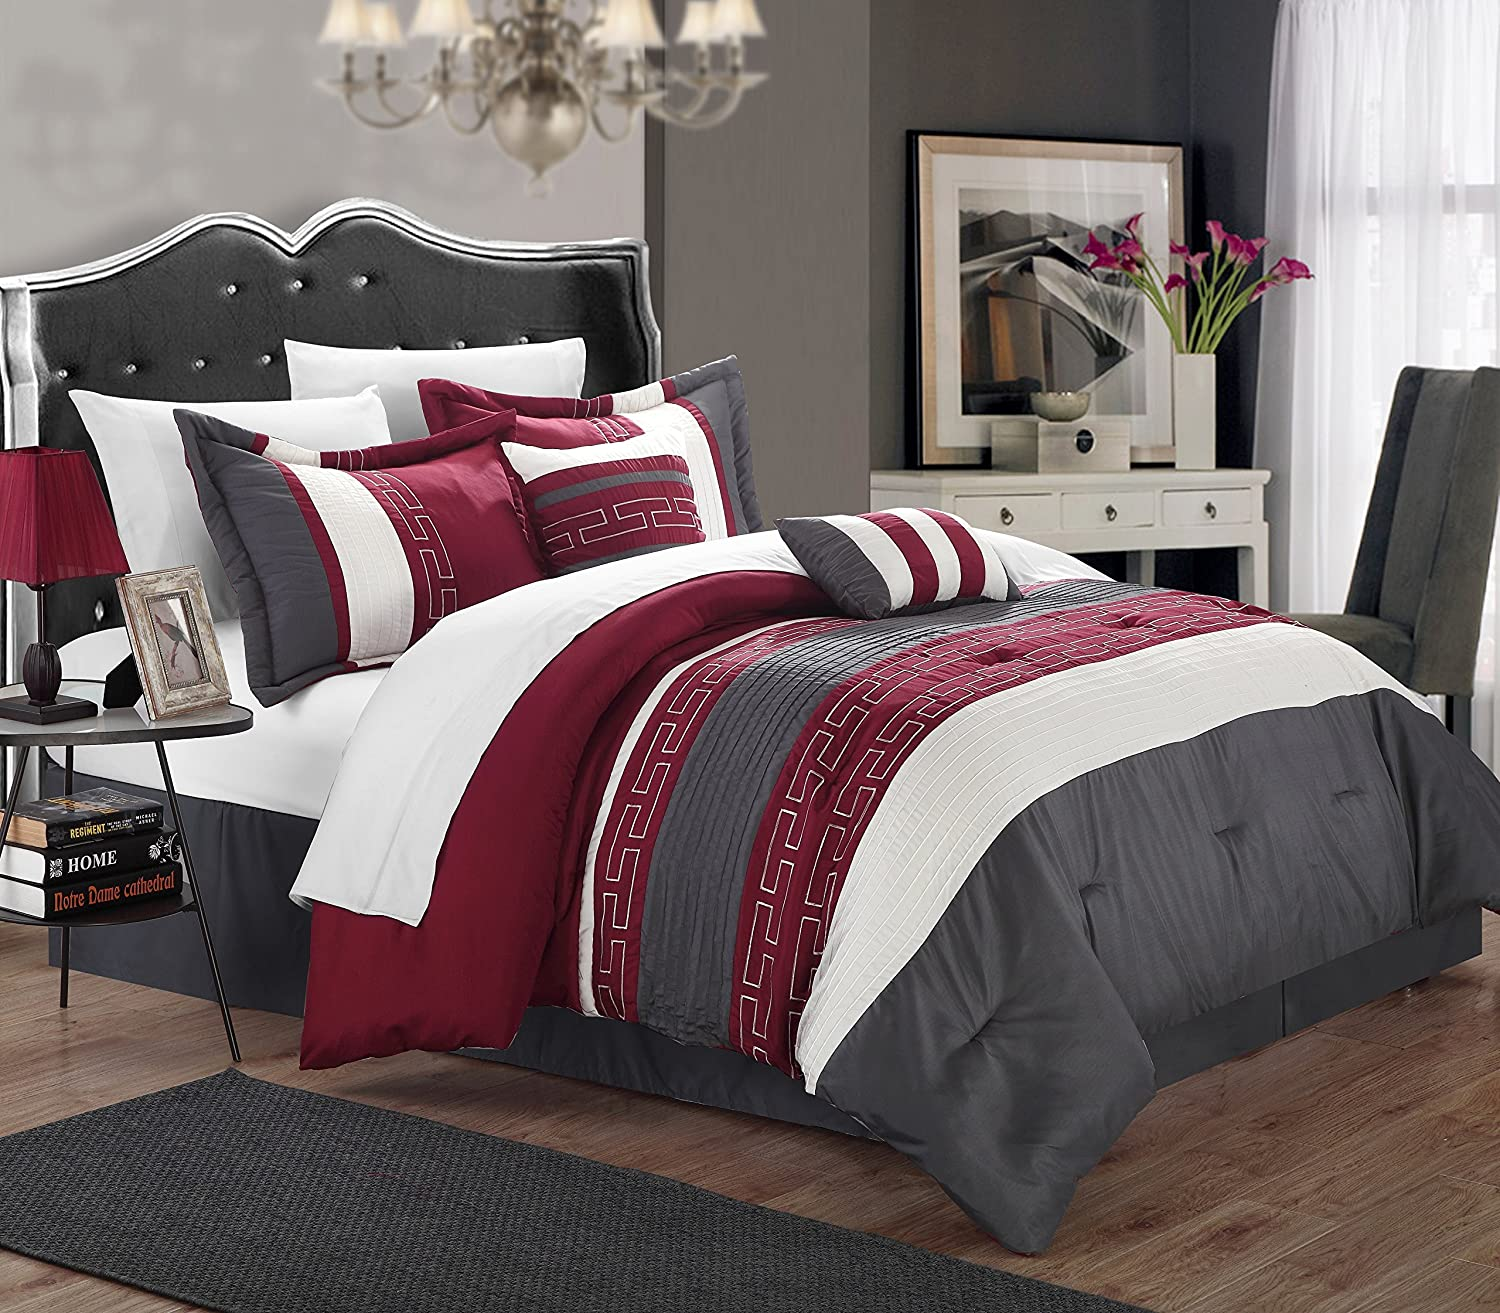 Best Quality Sheets On Amazon Burgundy Amp Black Bedding Sets Sale Ease Bedding With Style